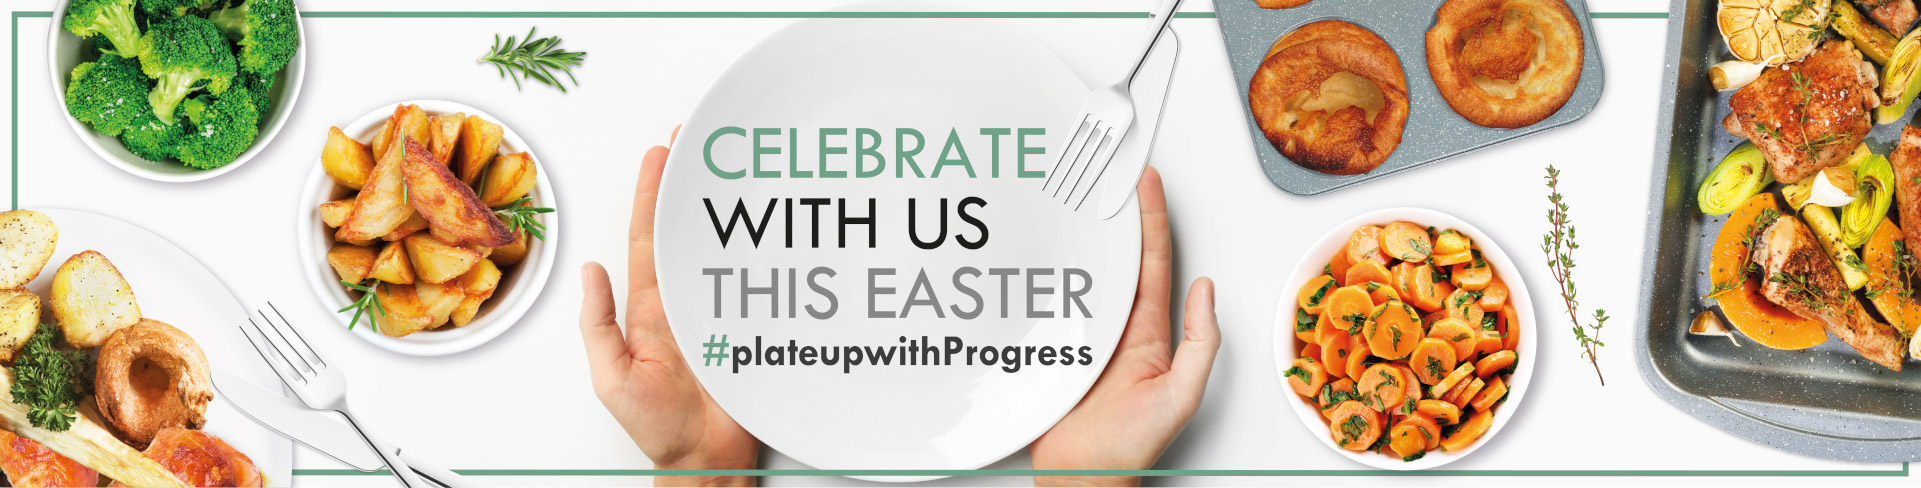 Celebrate with us this Easter